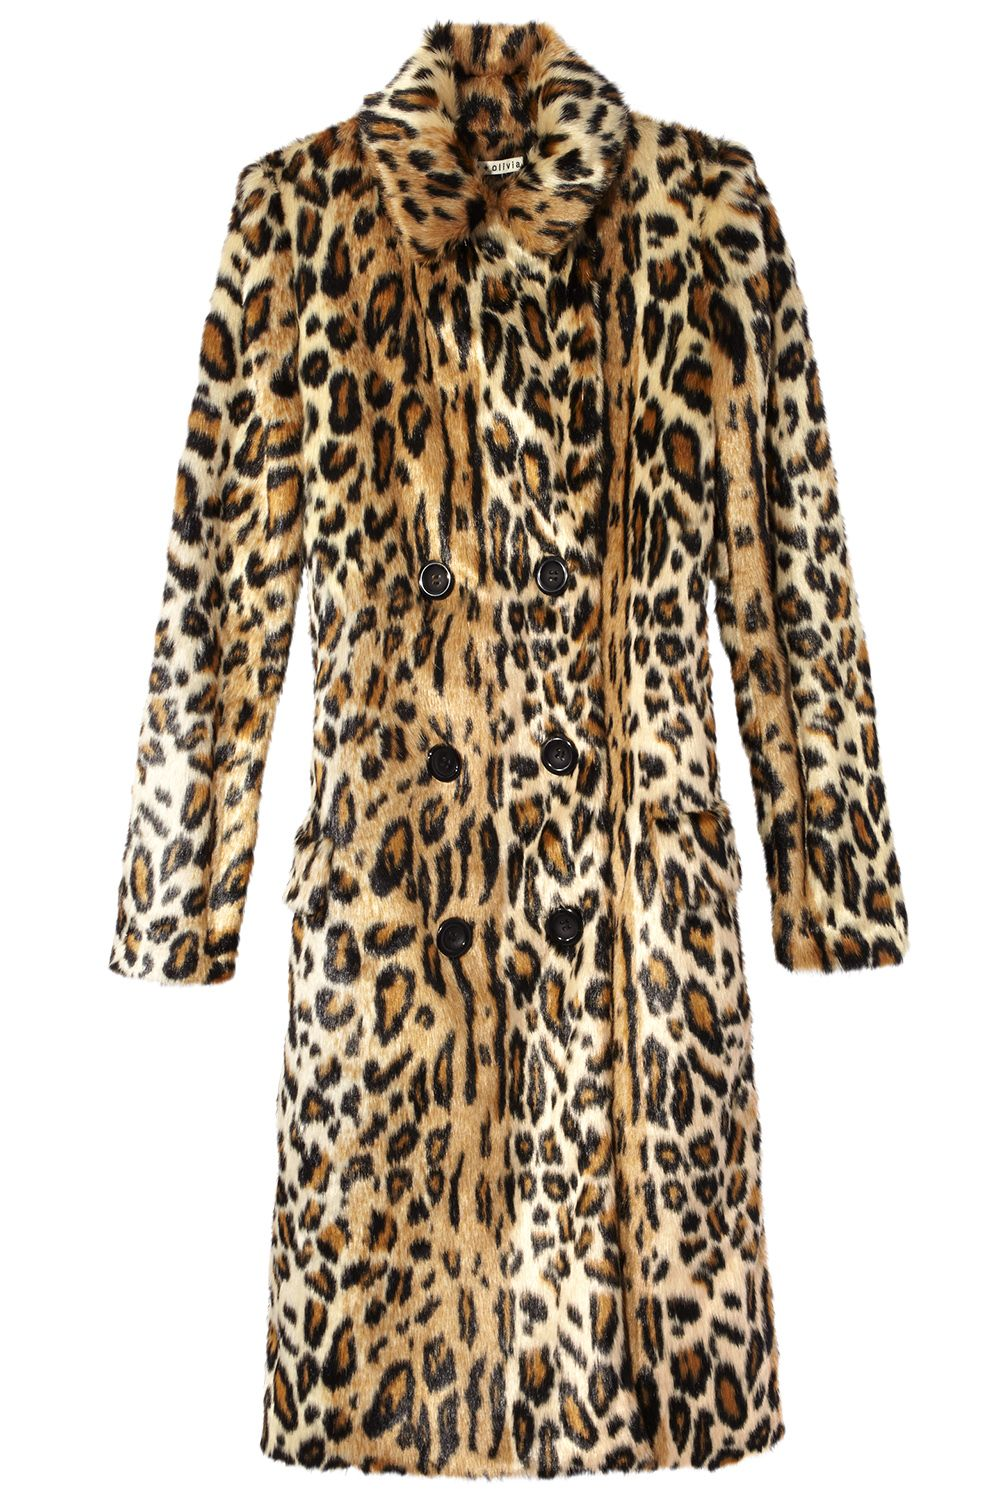 "<p><strong data-redactor-tag=""strong"" data-verified=""redactor"">Alice + Olivia by Stacey Bendet</strong> coat, $595, <a href=""http://www.aliceandolivia.com/"" target=""_blank"">aliceandolivia.com</a>.<span class=""redactor-invisible-space""></span></p>"